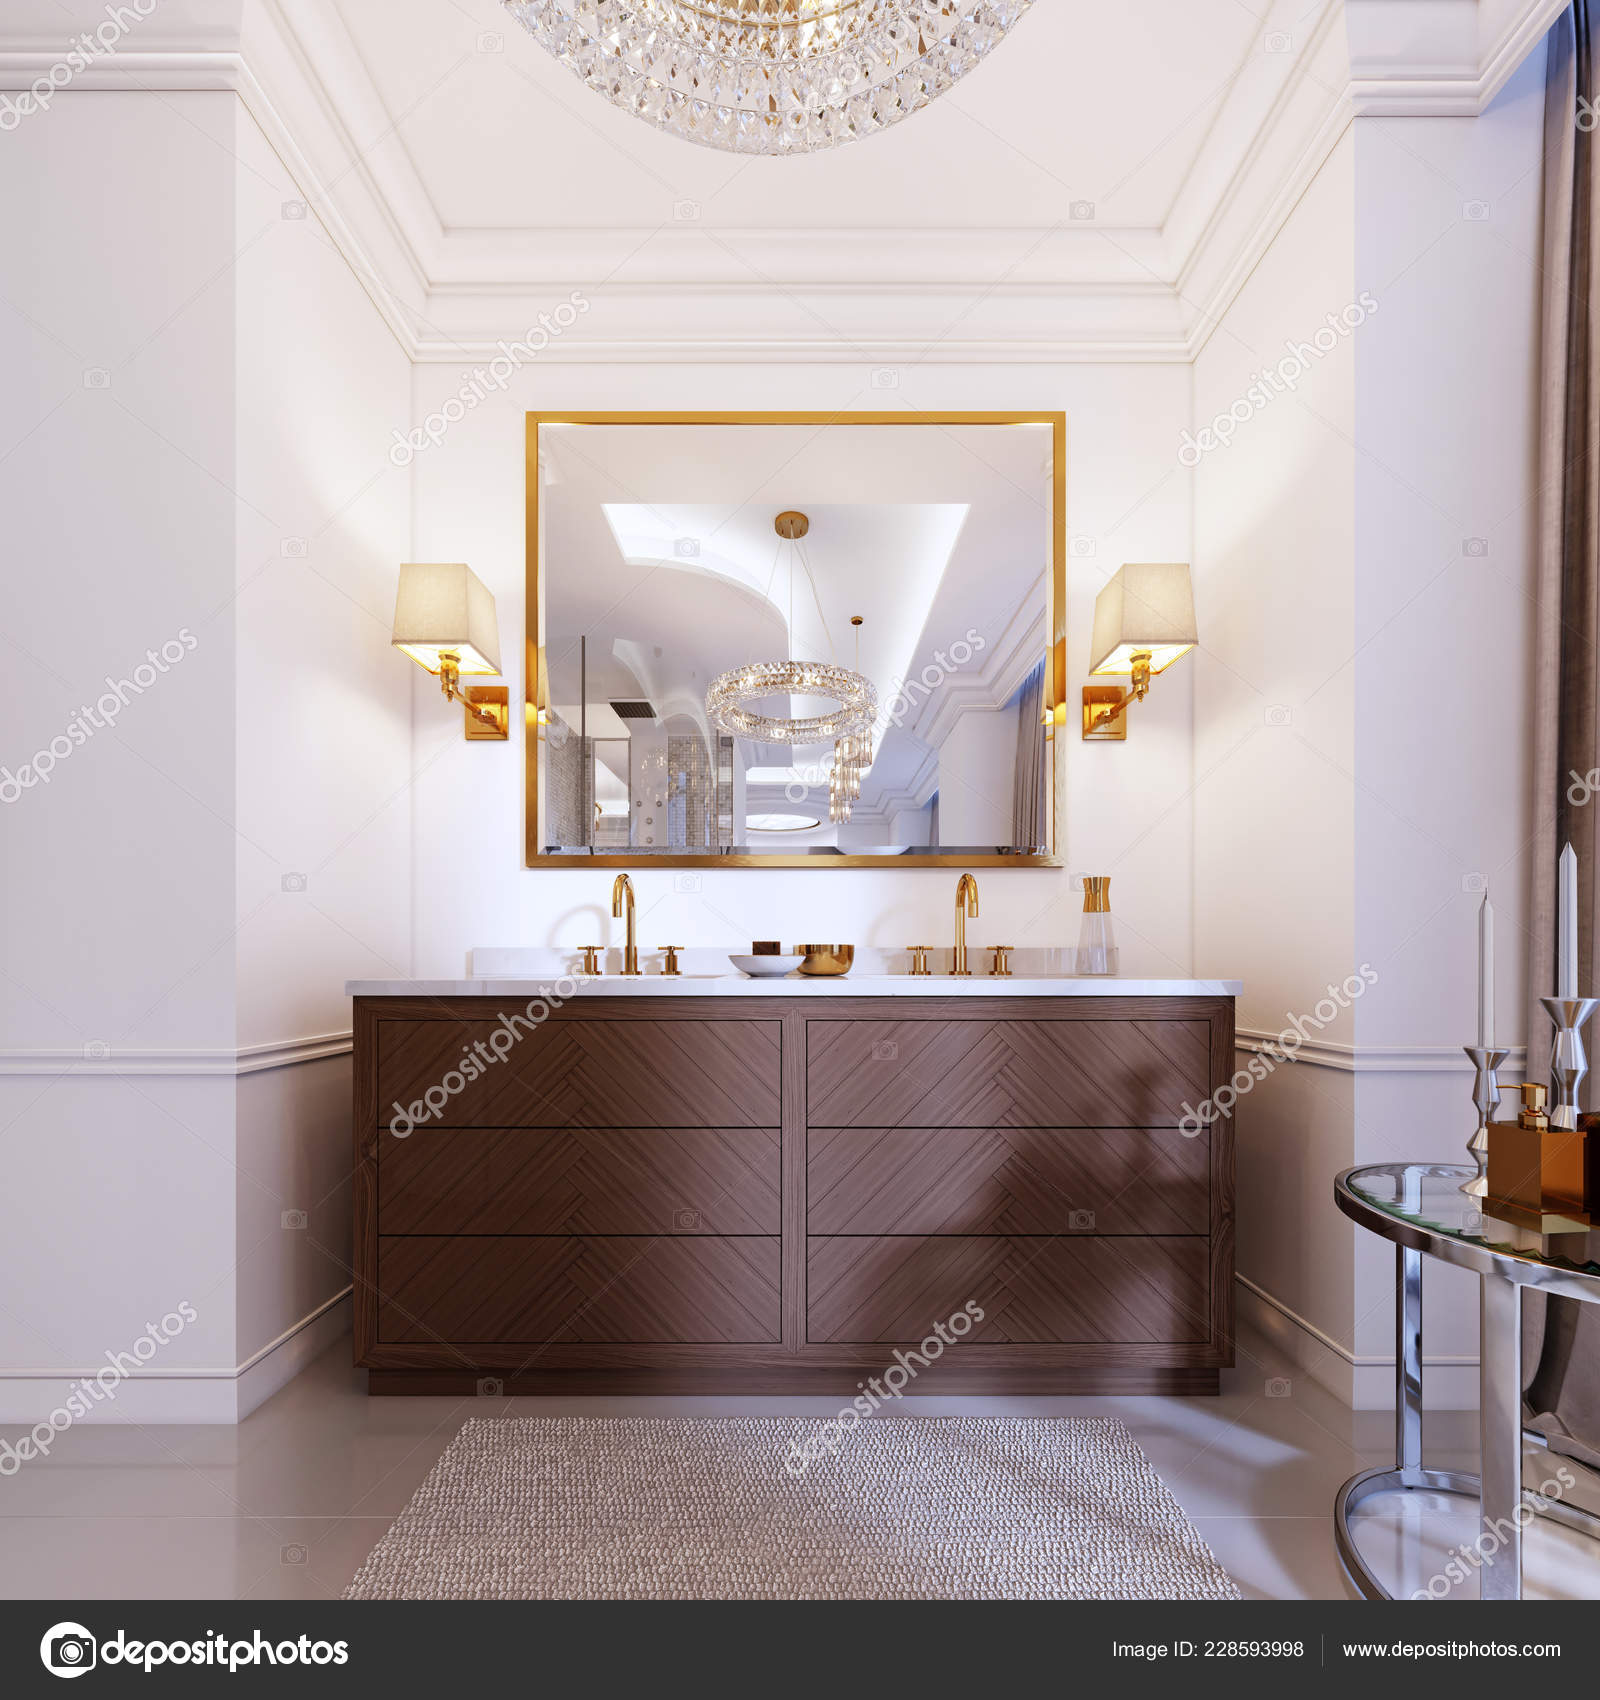 Modern Wooden Vanity Mirror Gold Frame Sconces Wall Low Table Stock Photo C Kuprin33 228593998